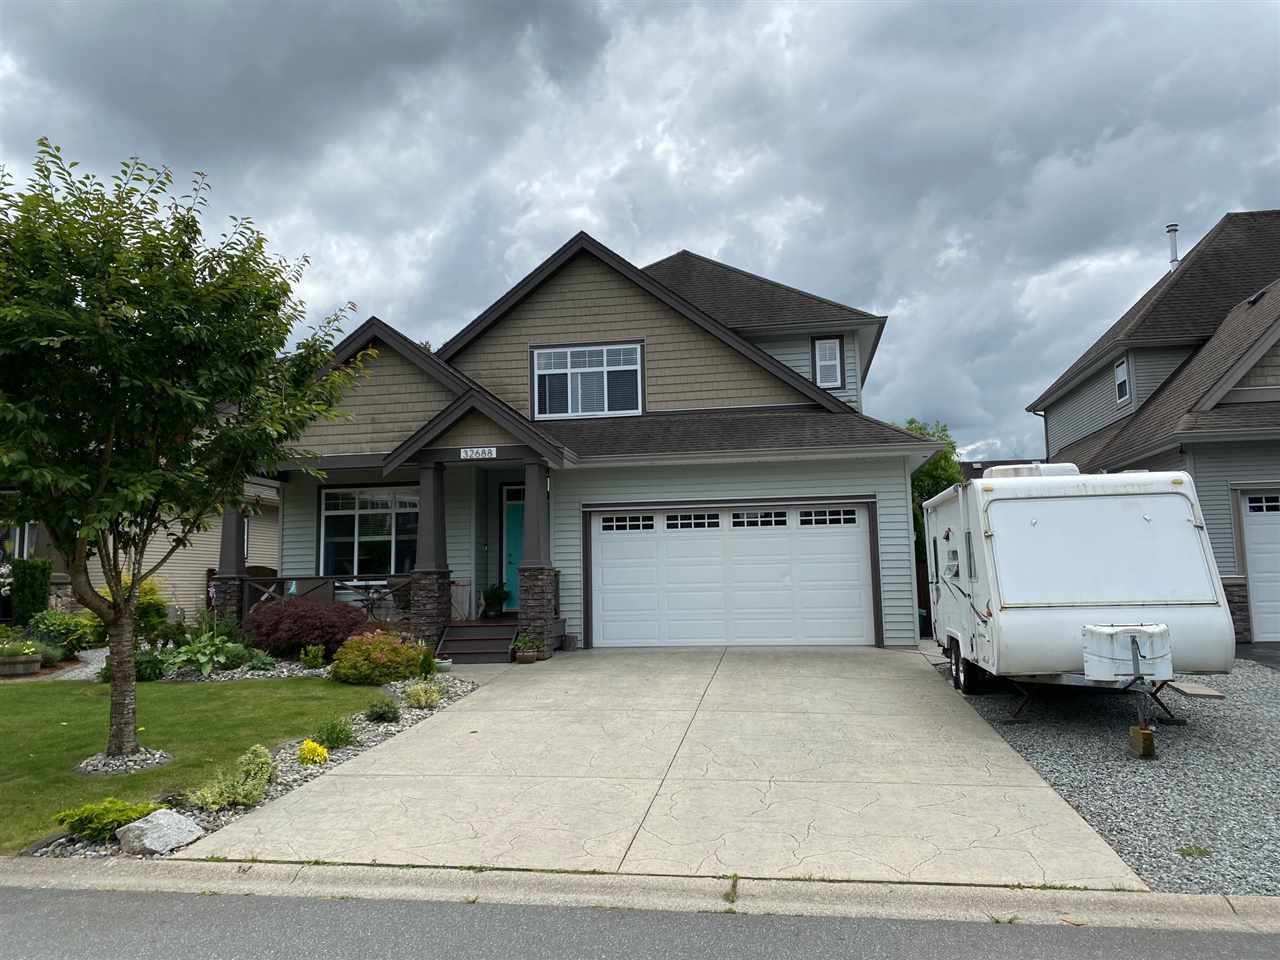 """Main Photo: 32688 APPLEBY Court in Mission: Mission BC House for sale in """"Tunbridge Station"""" : MLS®# R2474600"""